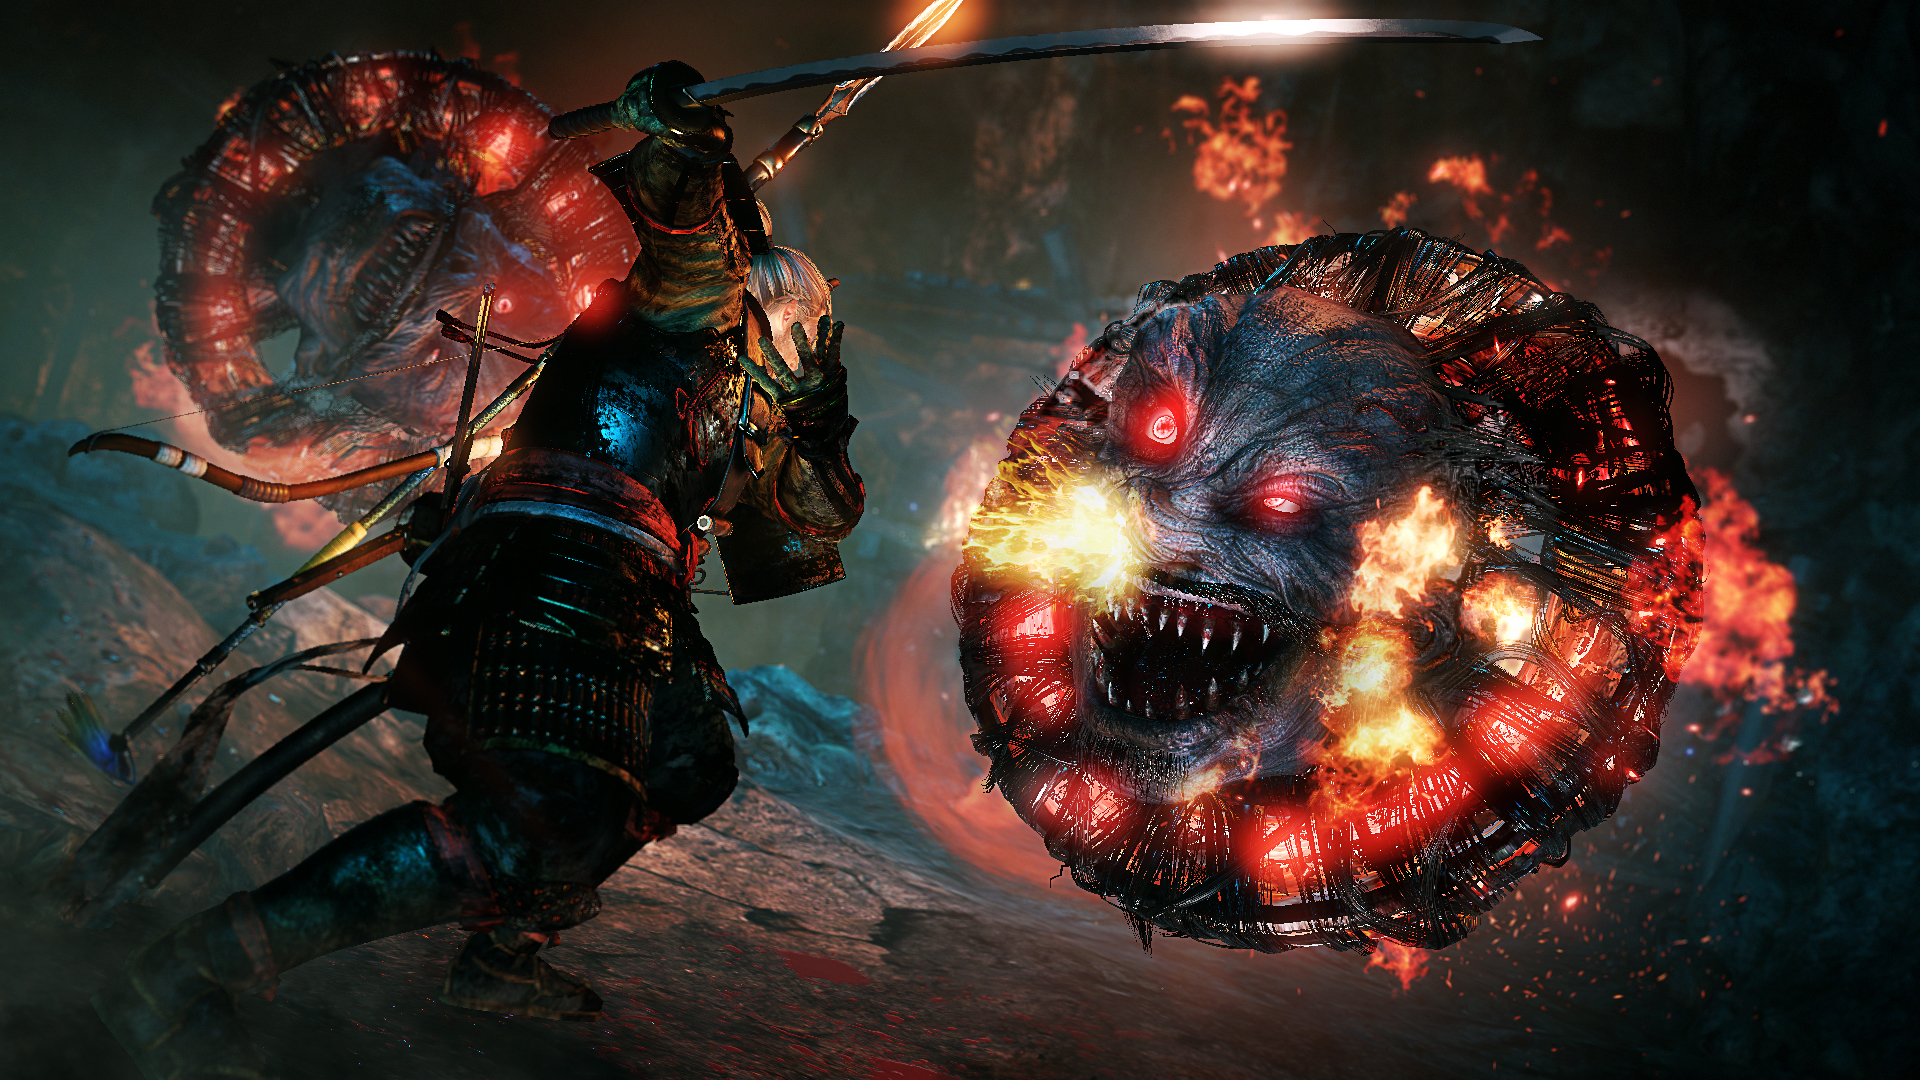 Nioh: 13 things you can do to make it a little easier